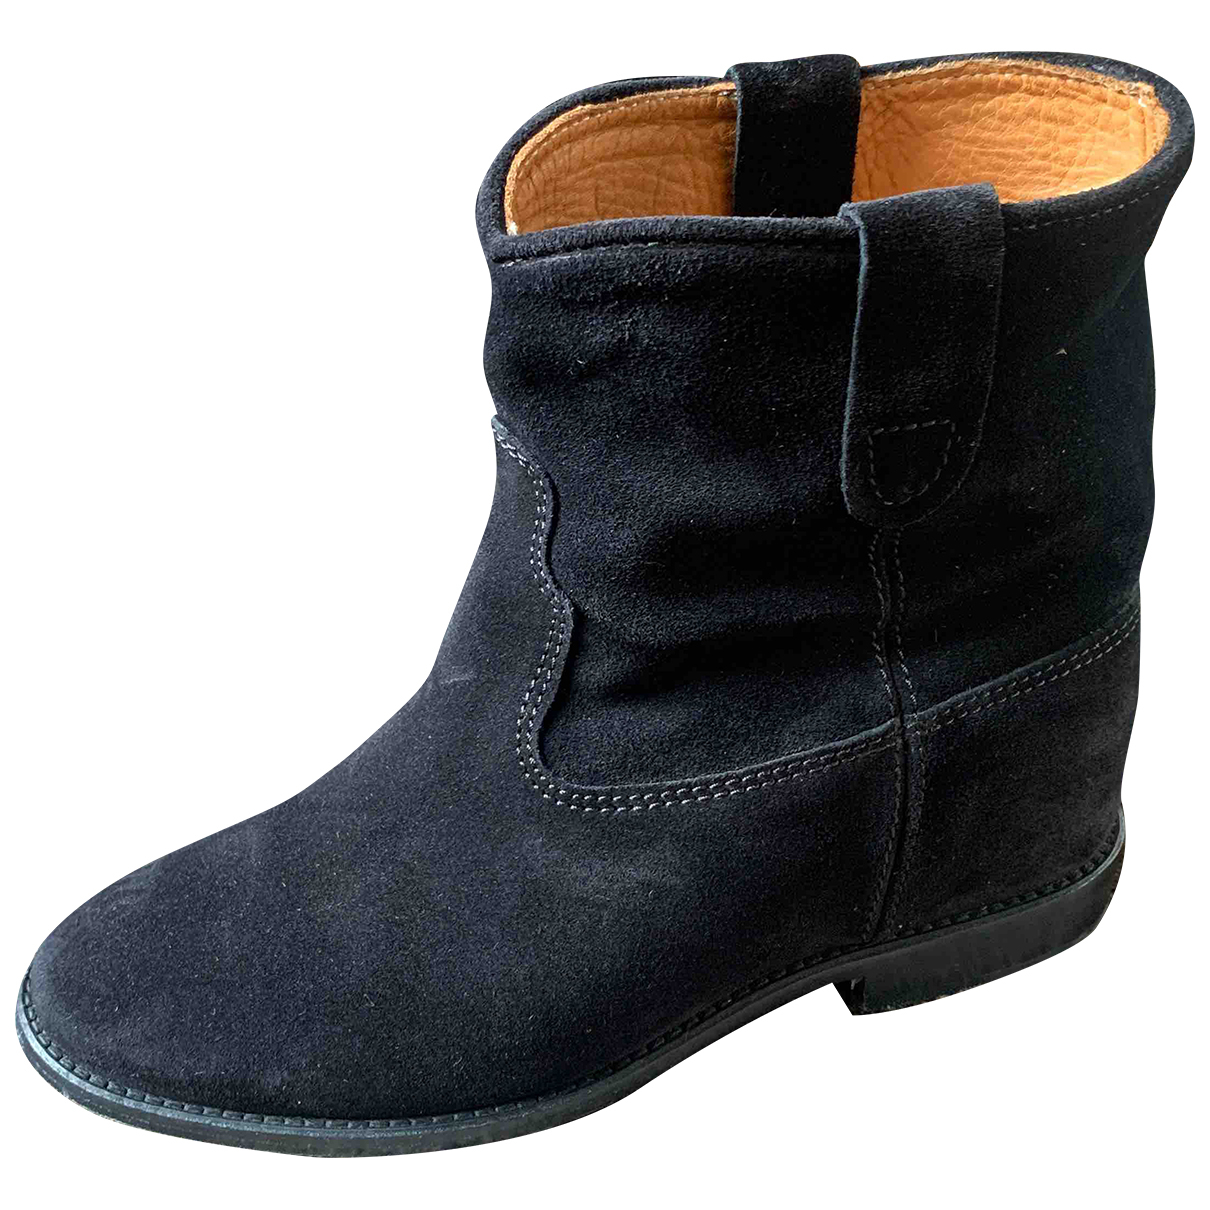 Isabel Marant Etoile N Black Suede Ankle boots for Women 36 EU